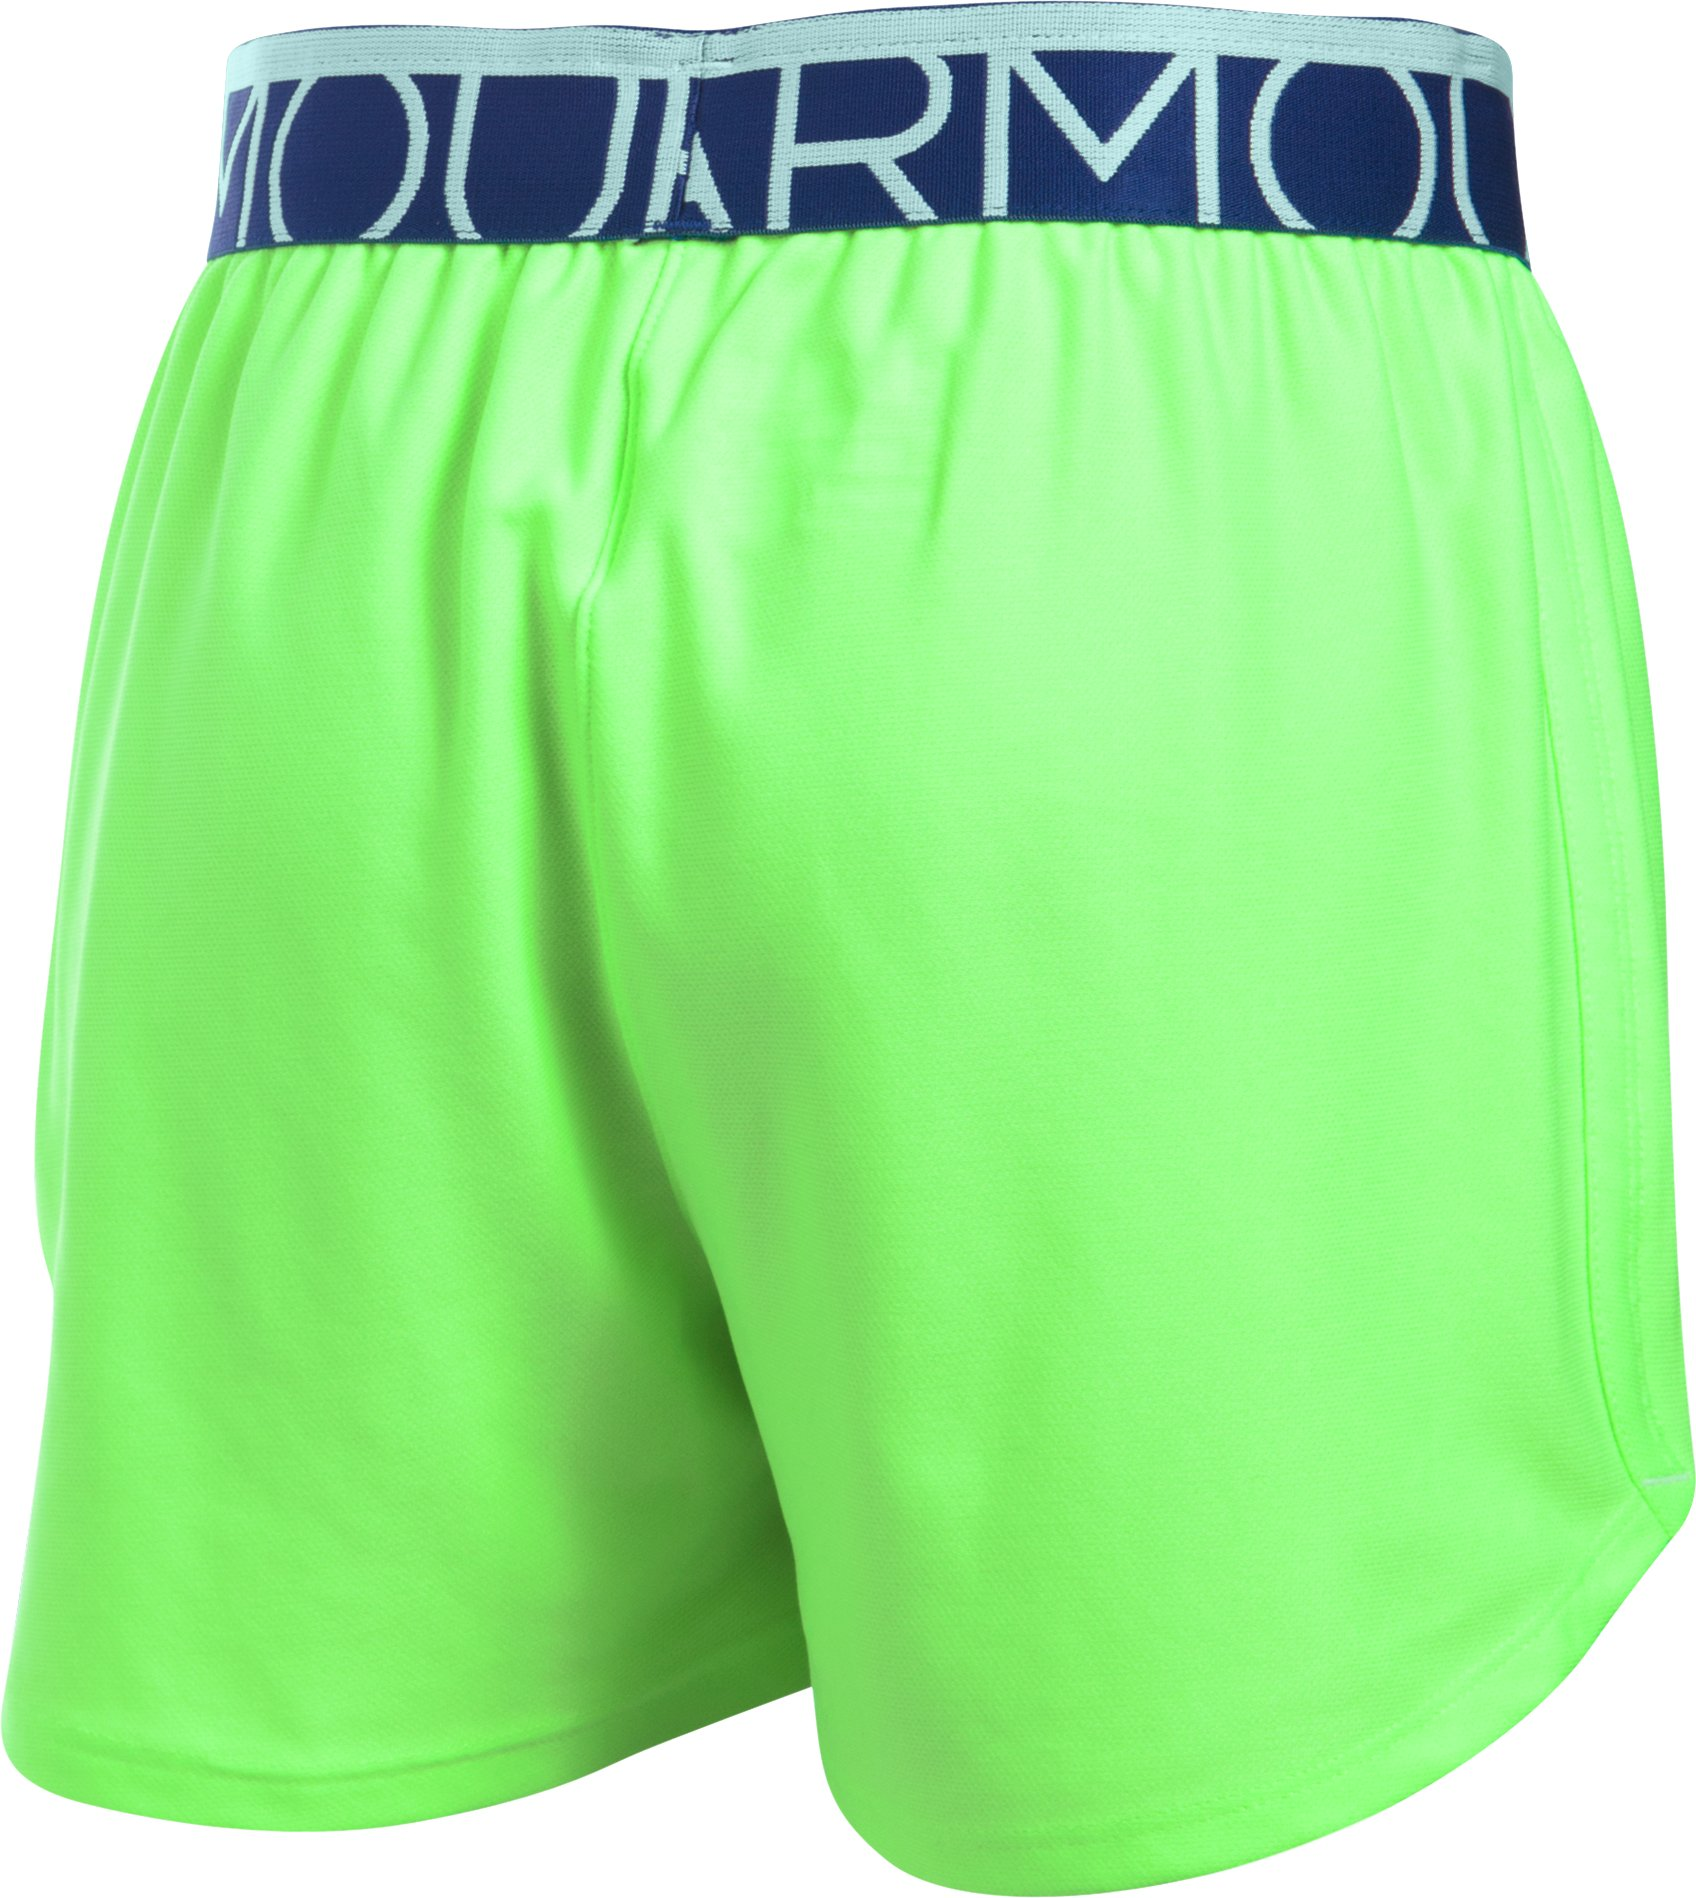 Girls' UA Play Up Shorts - 3 for $35, LIME LIGHT, undefined